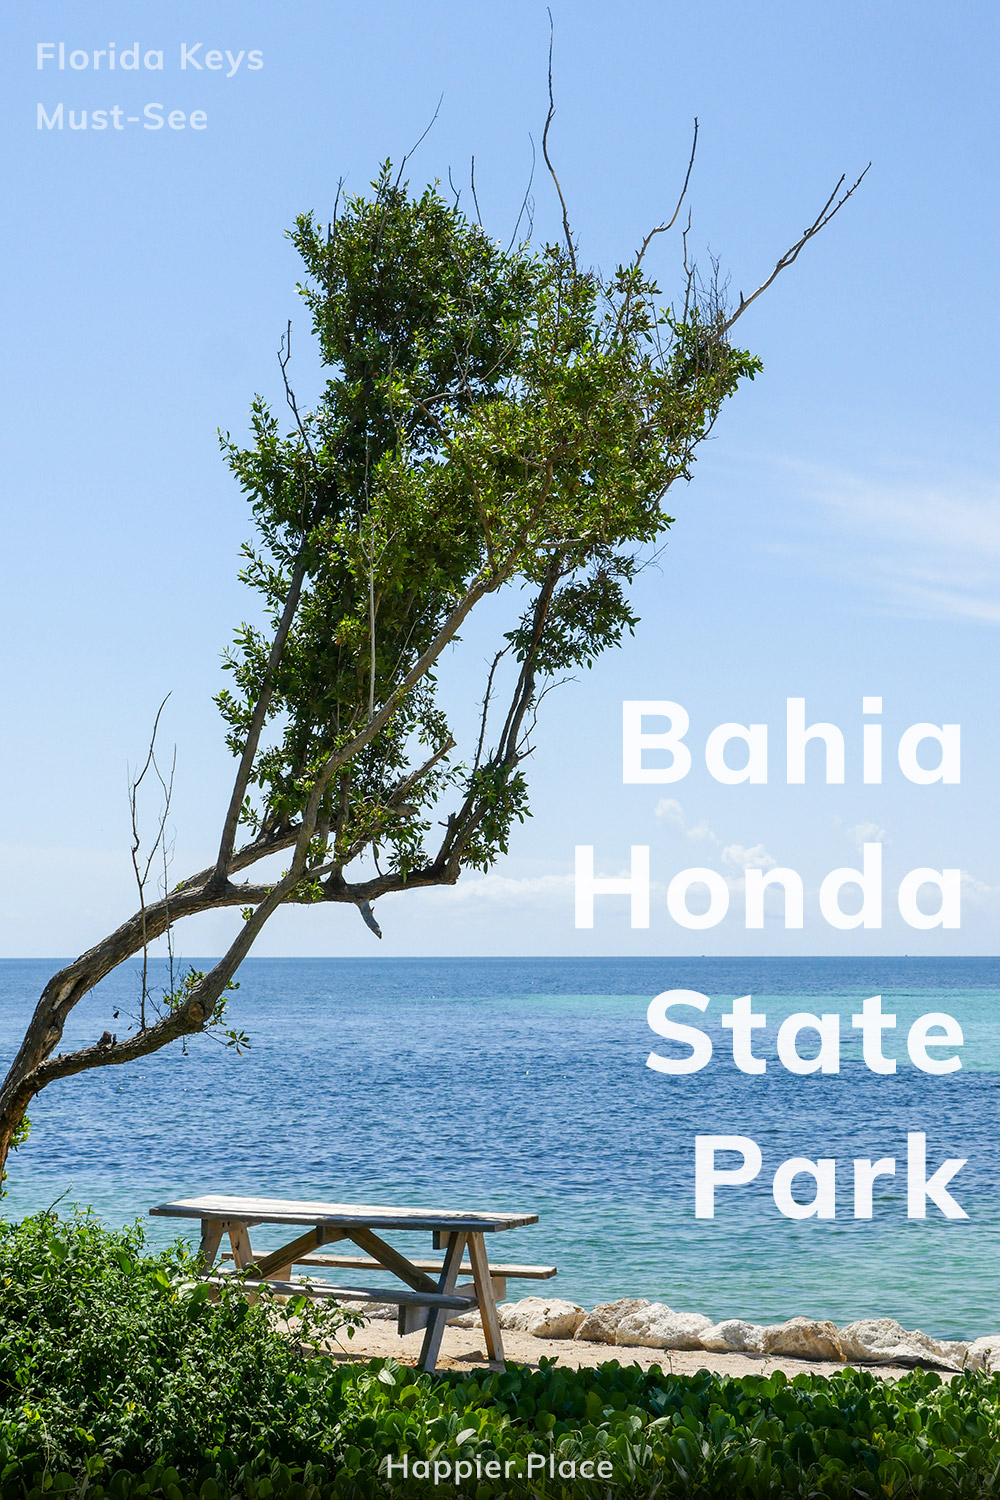 Bahia Honda State Park, Florida Keys, Must-See, beach bench in the shade of tree, picnic table